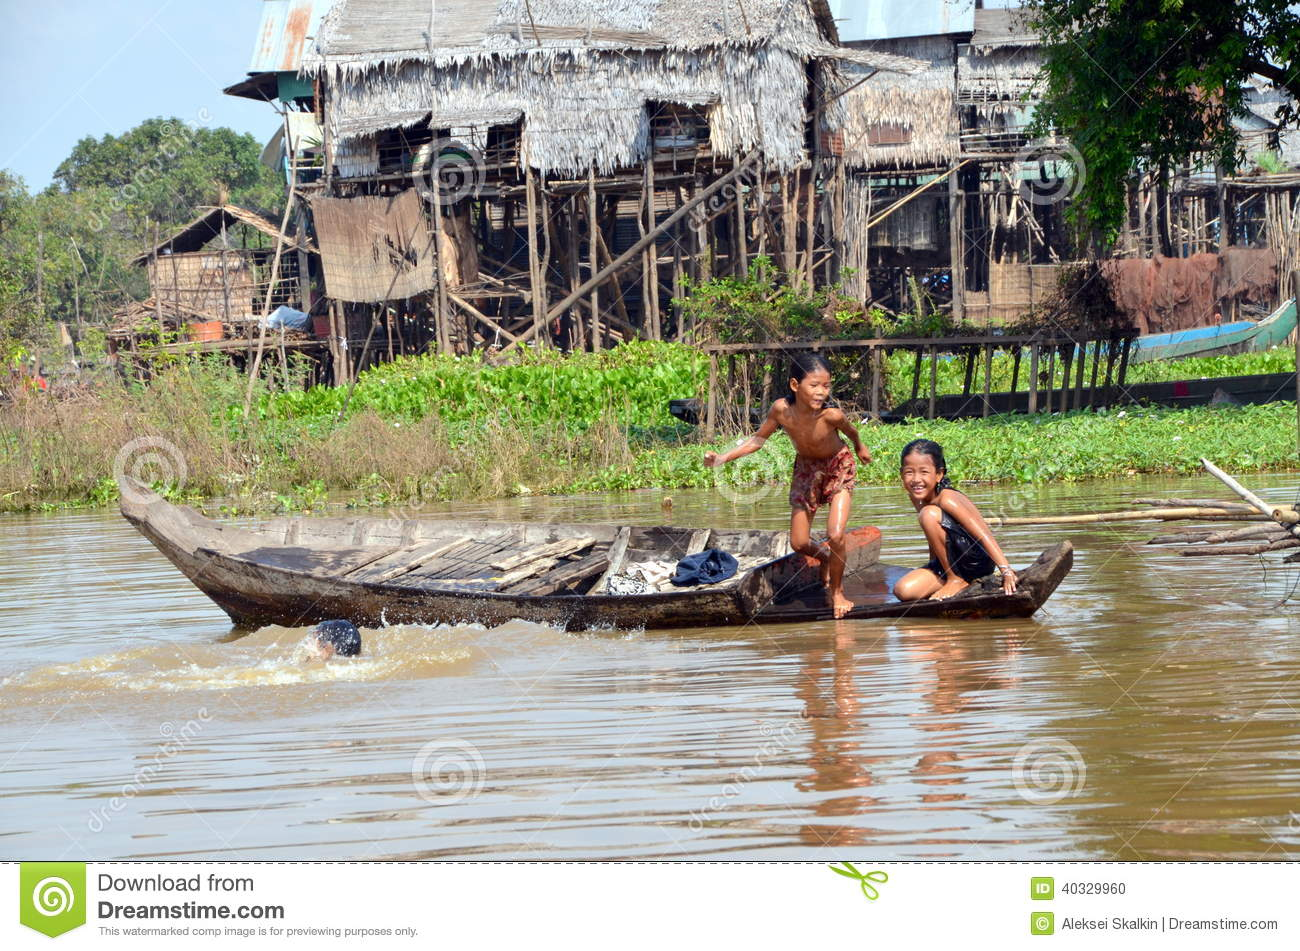 Children swimming in the murky waters of the Tonle Sap River, jumping ...